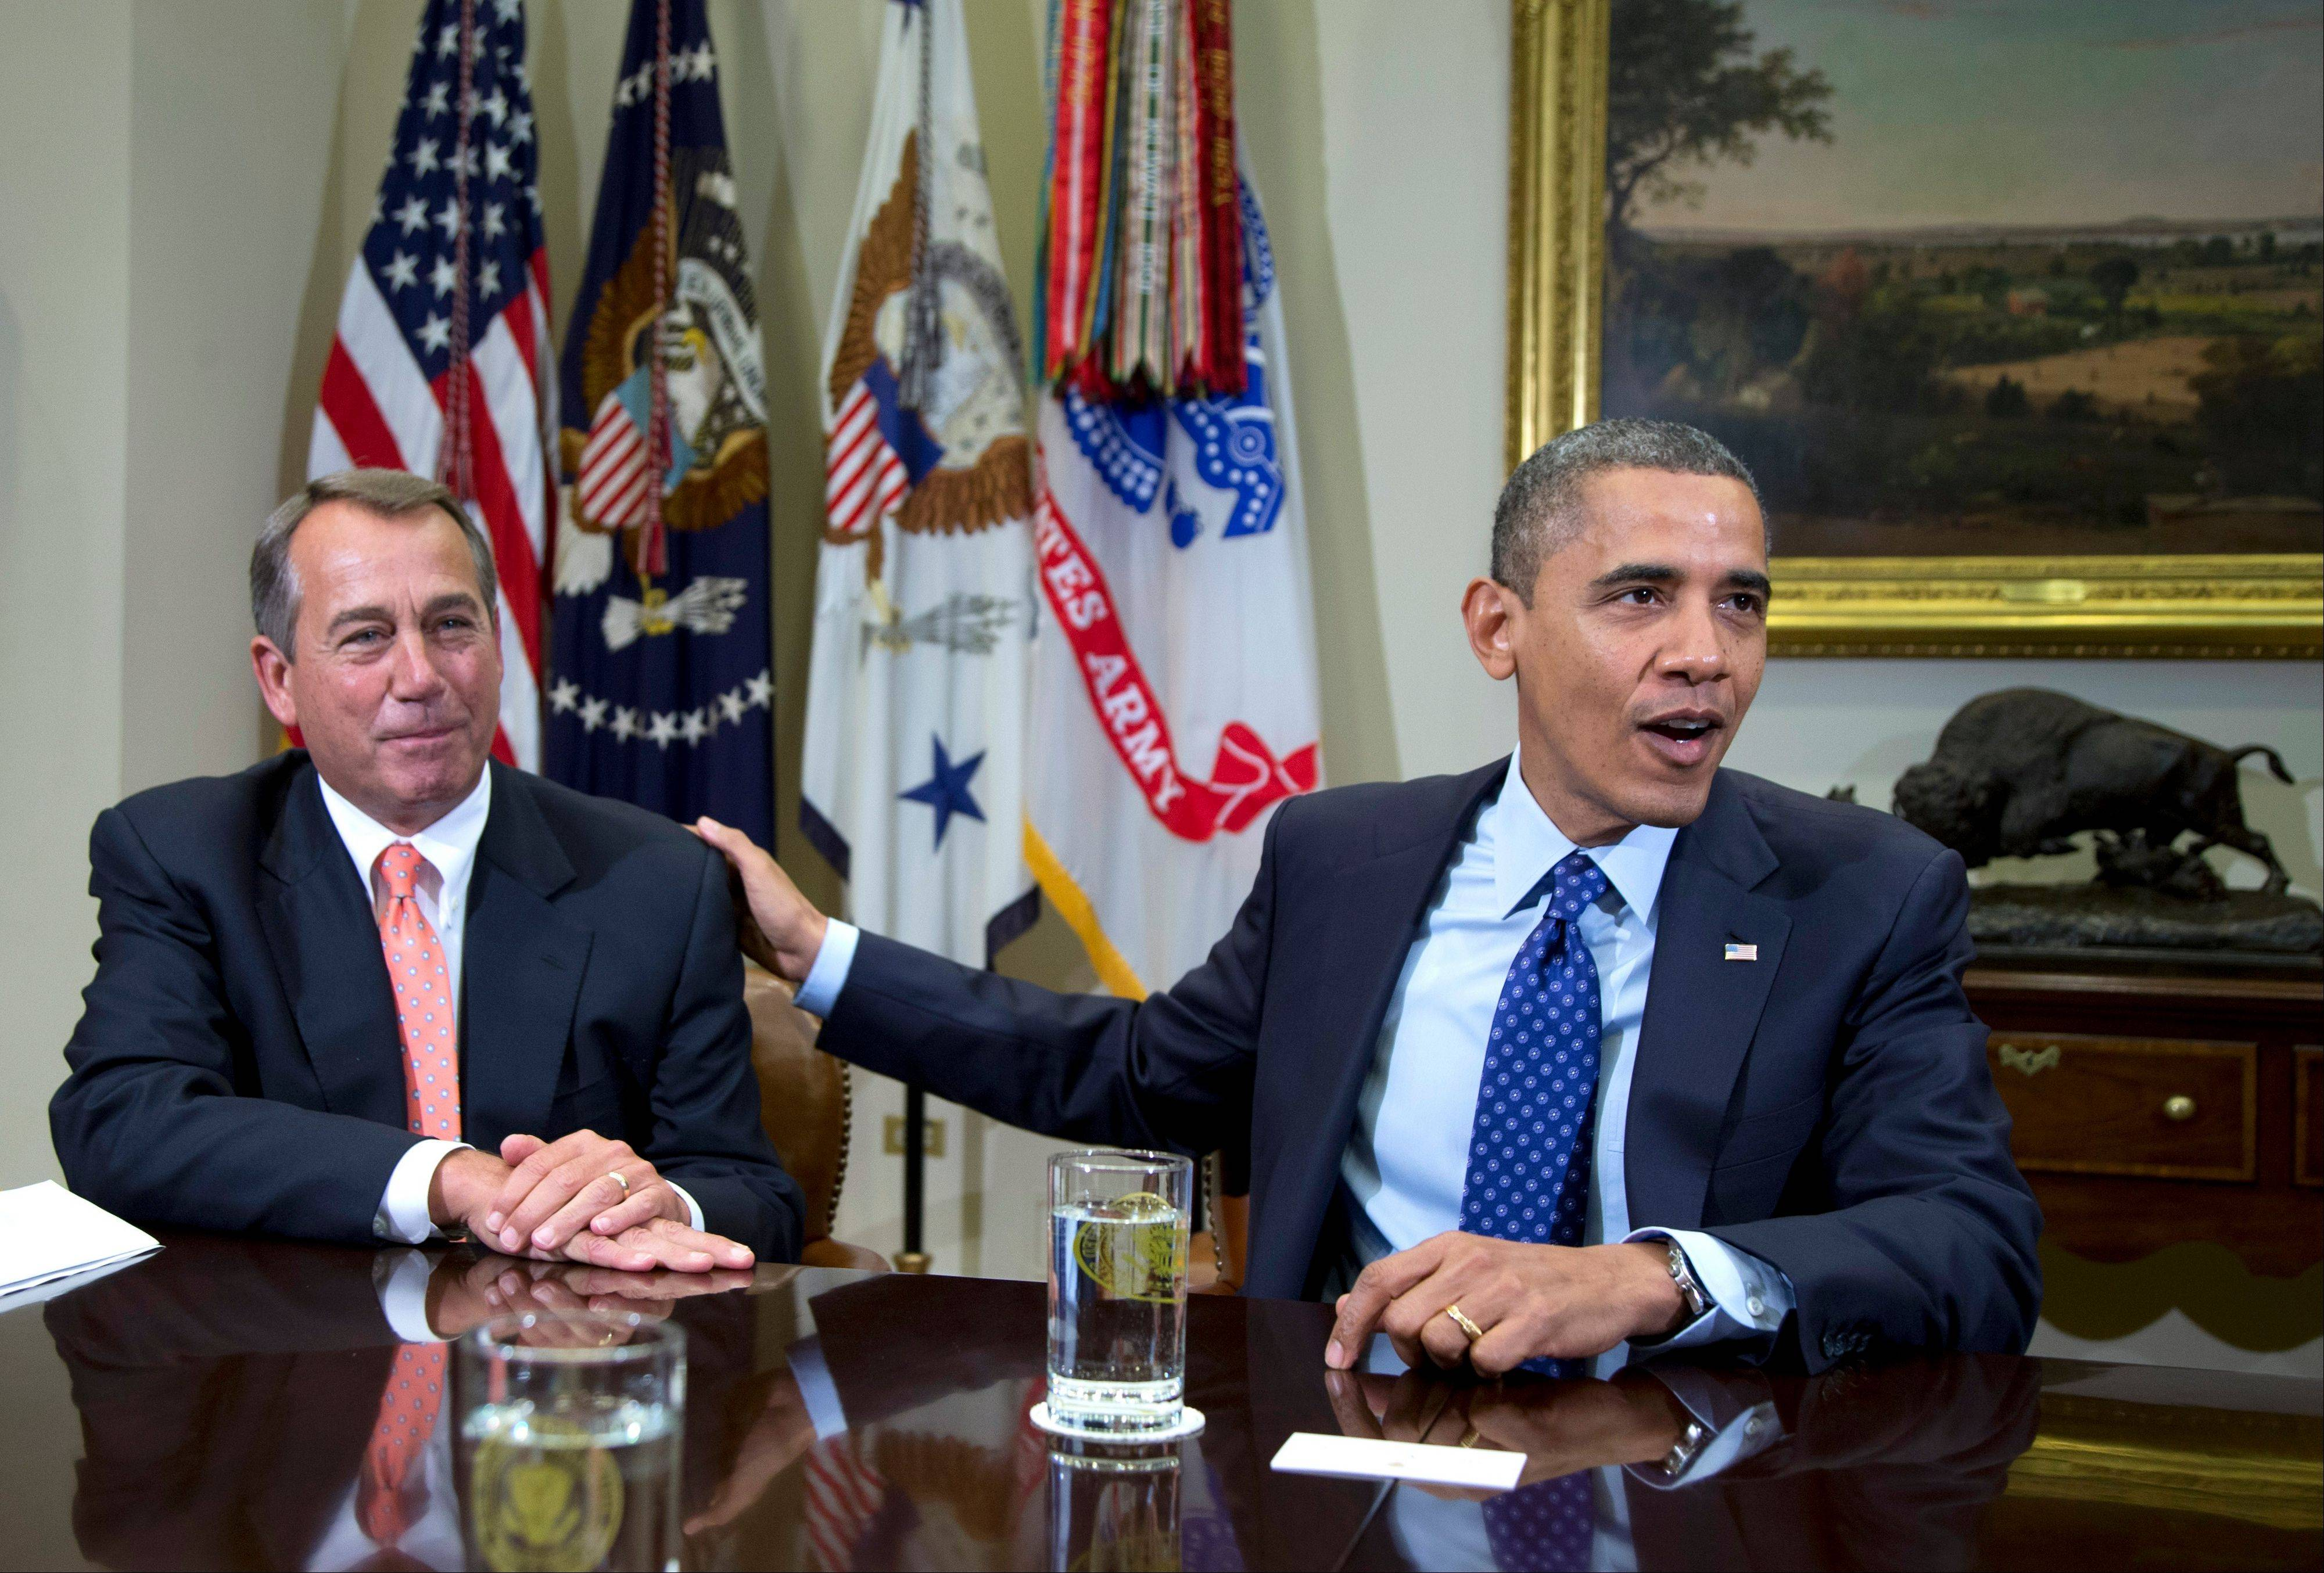 President Barack Obama acknowledges House Speaker John Boehner of Ohio while speaking to reporters at the White House Nov. 16, as he hosted a meeting of the bipartisan, bicameral leadership of Congress to discuss the deficit and economy.